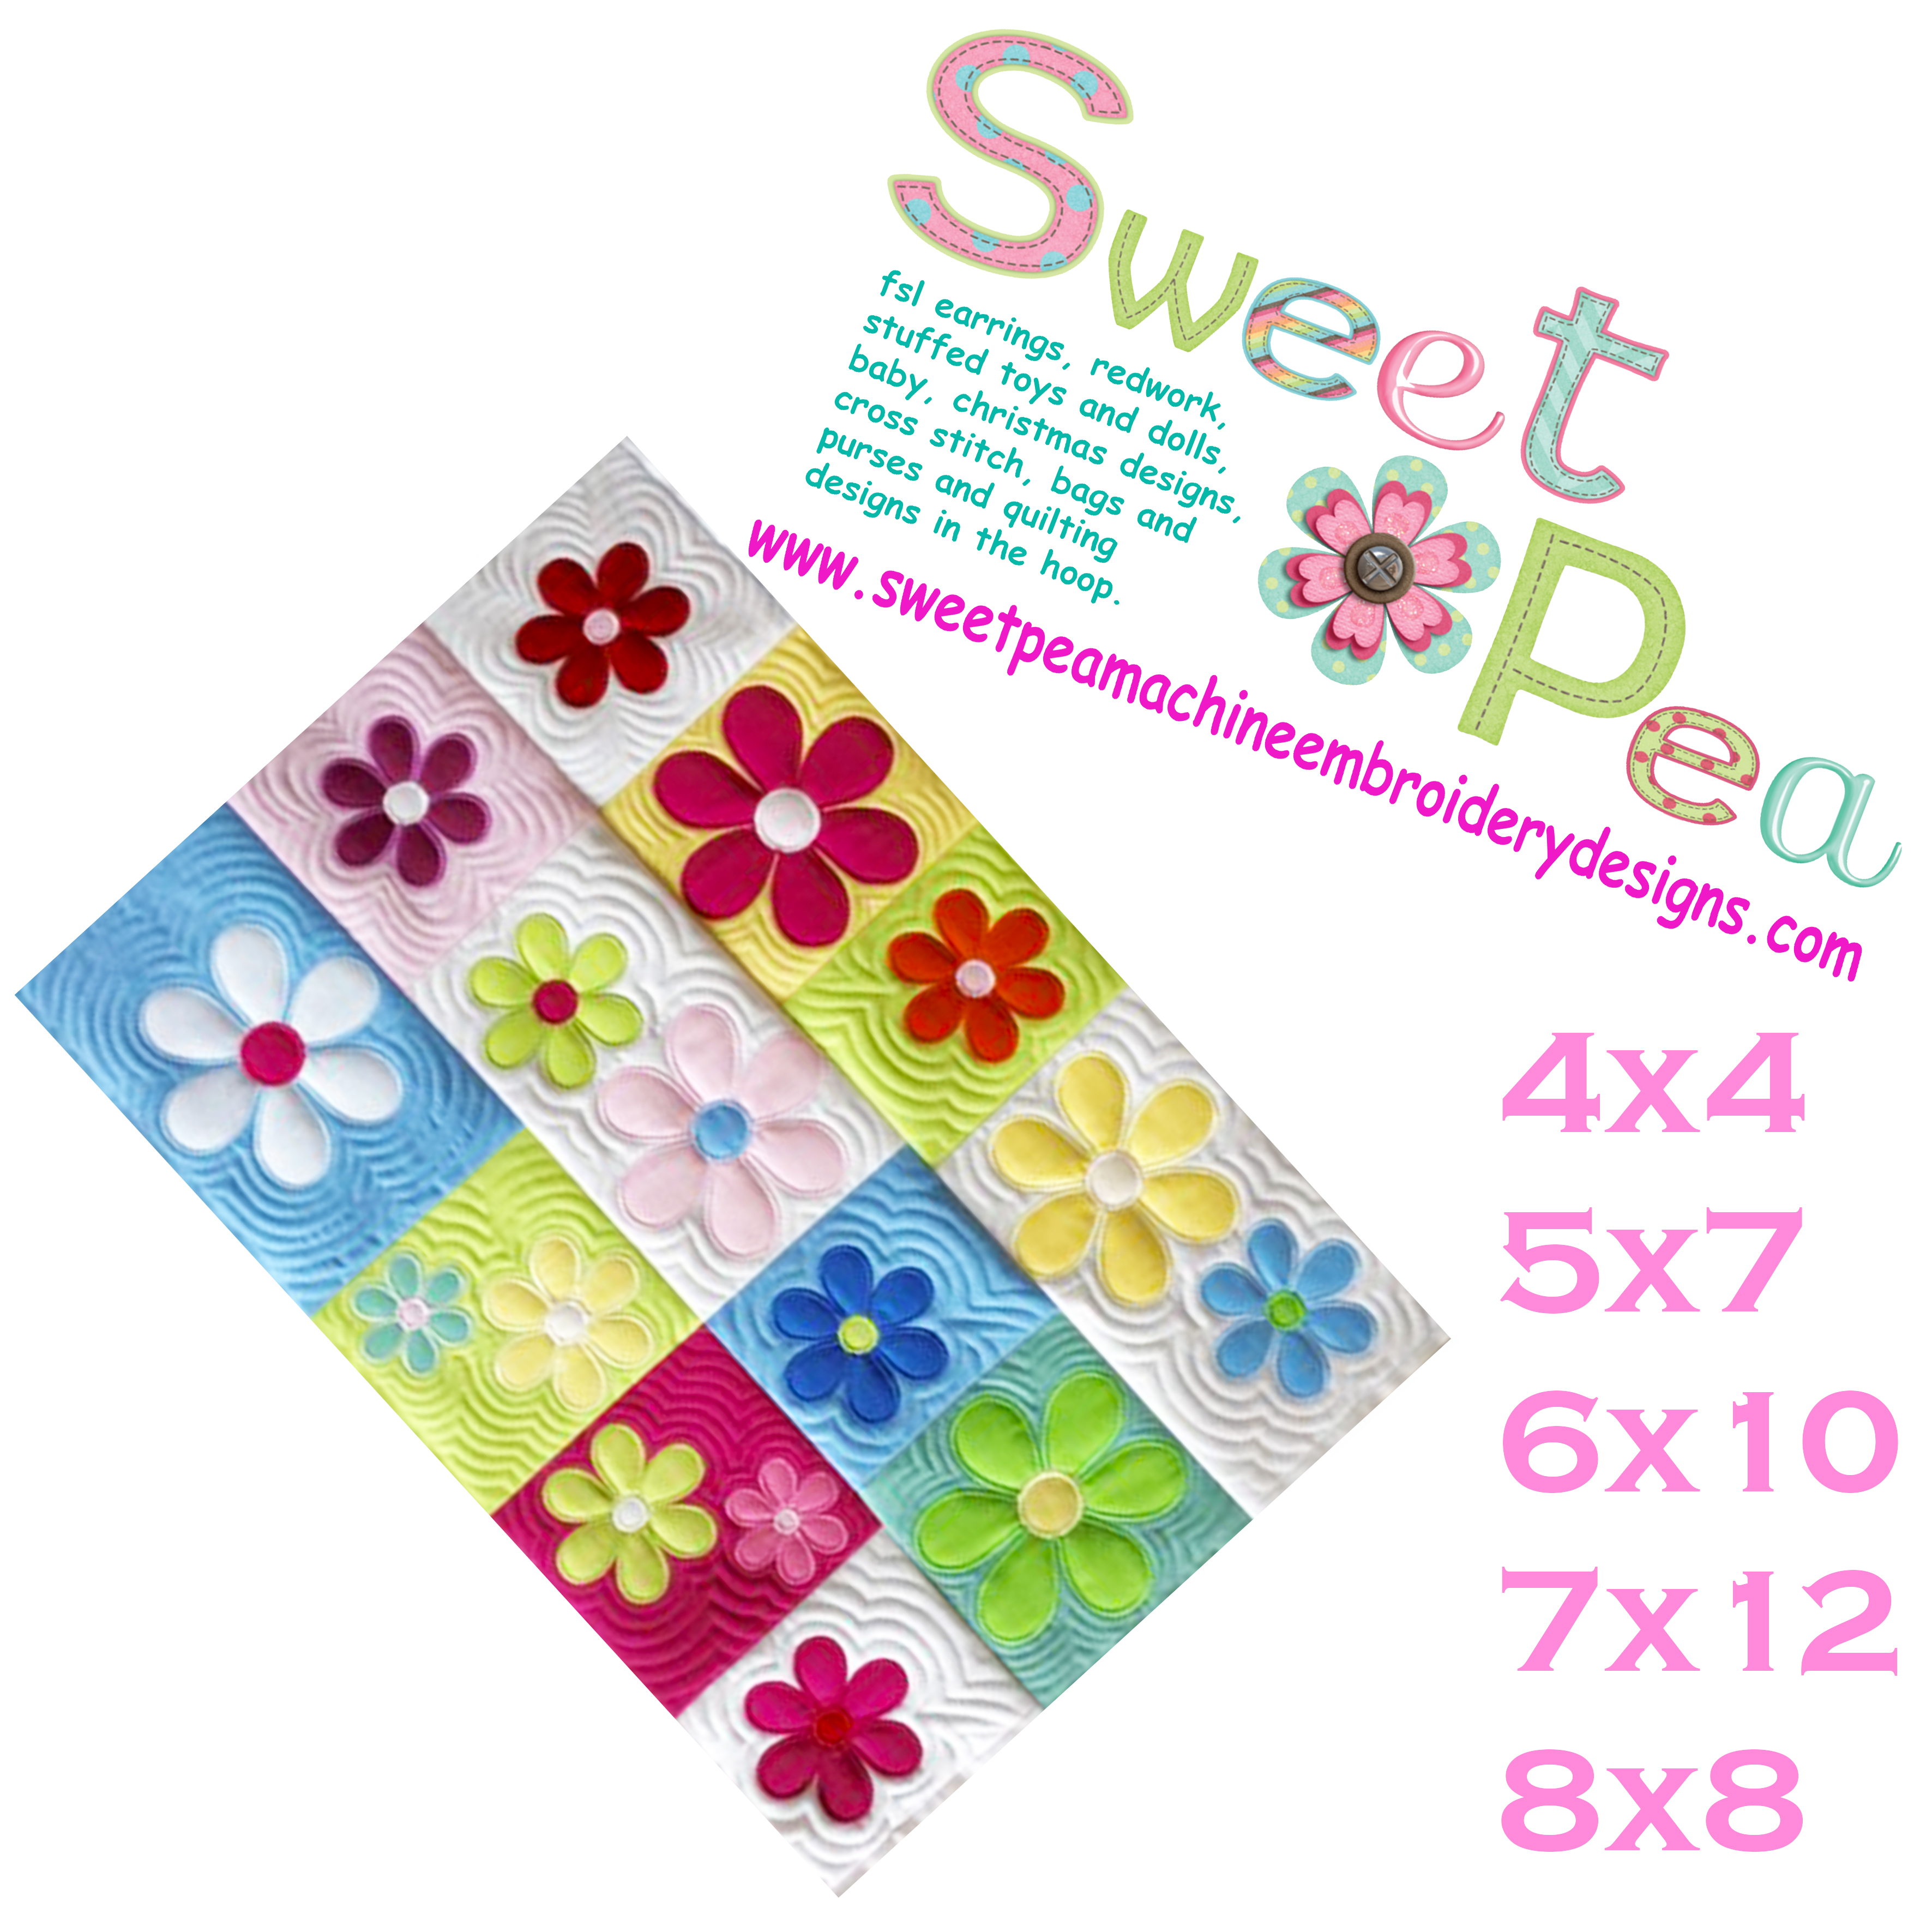 My designs sweet pea machine embroidery